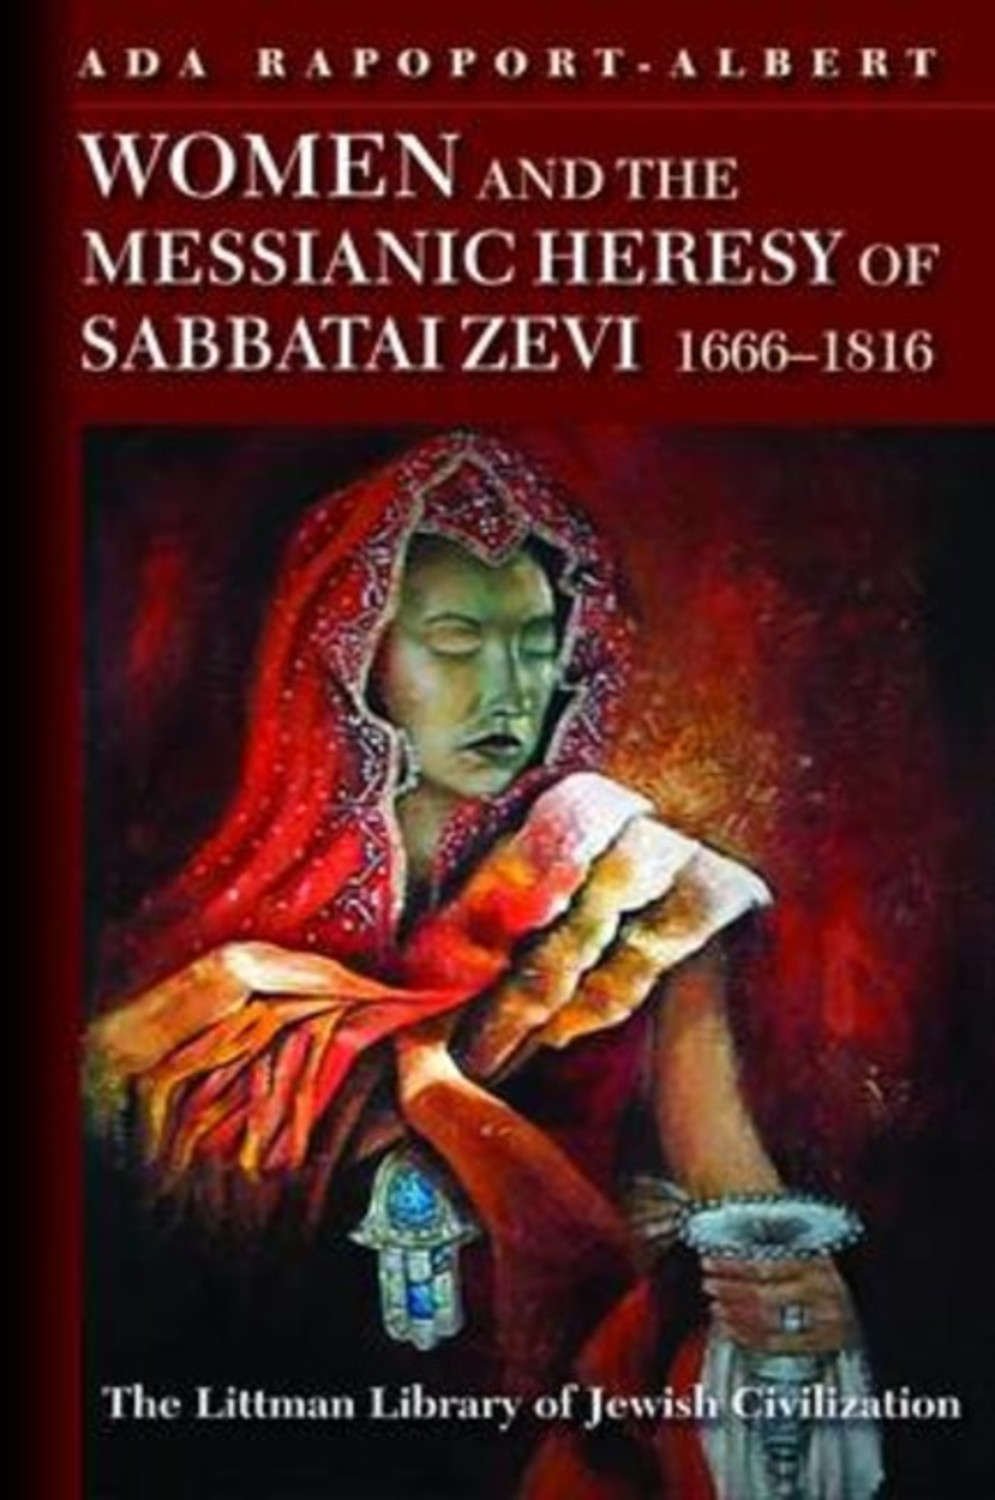 Women and the Messianic Heresy of Sabbatai Zevi, 1666 - 1816